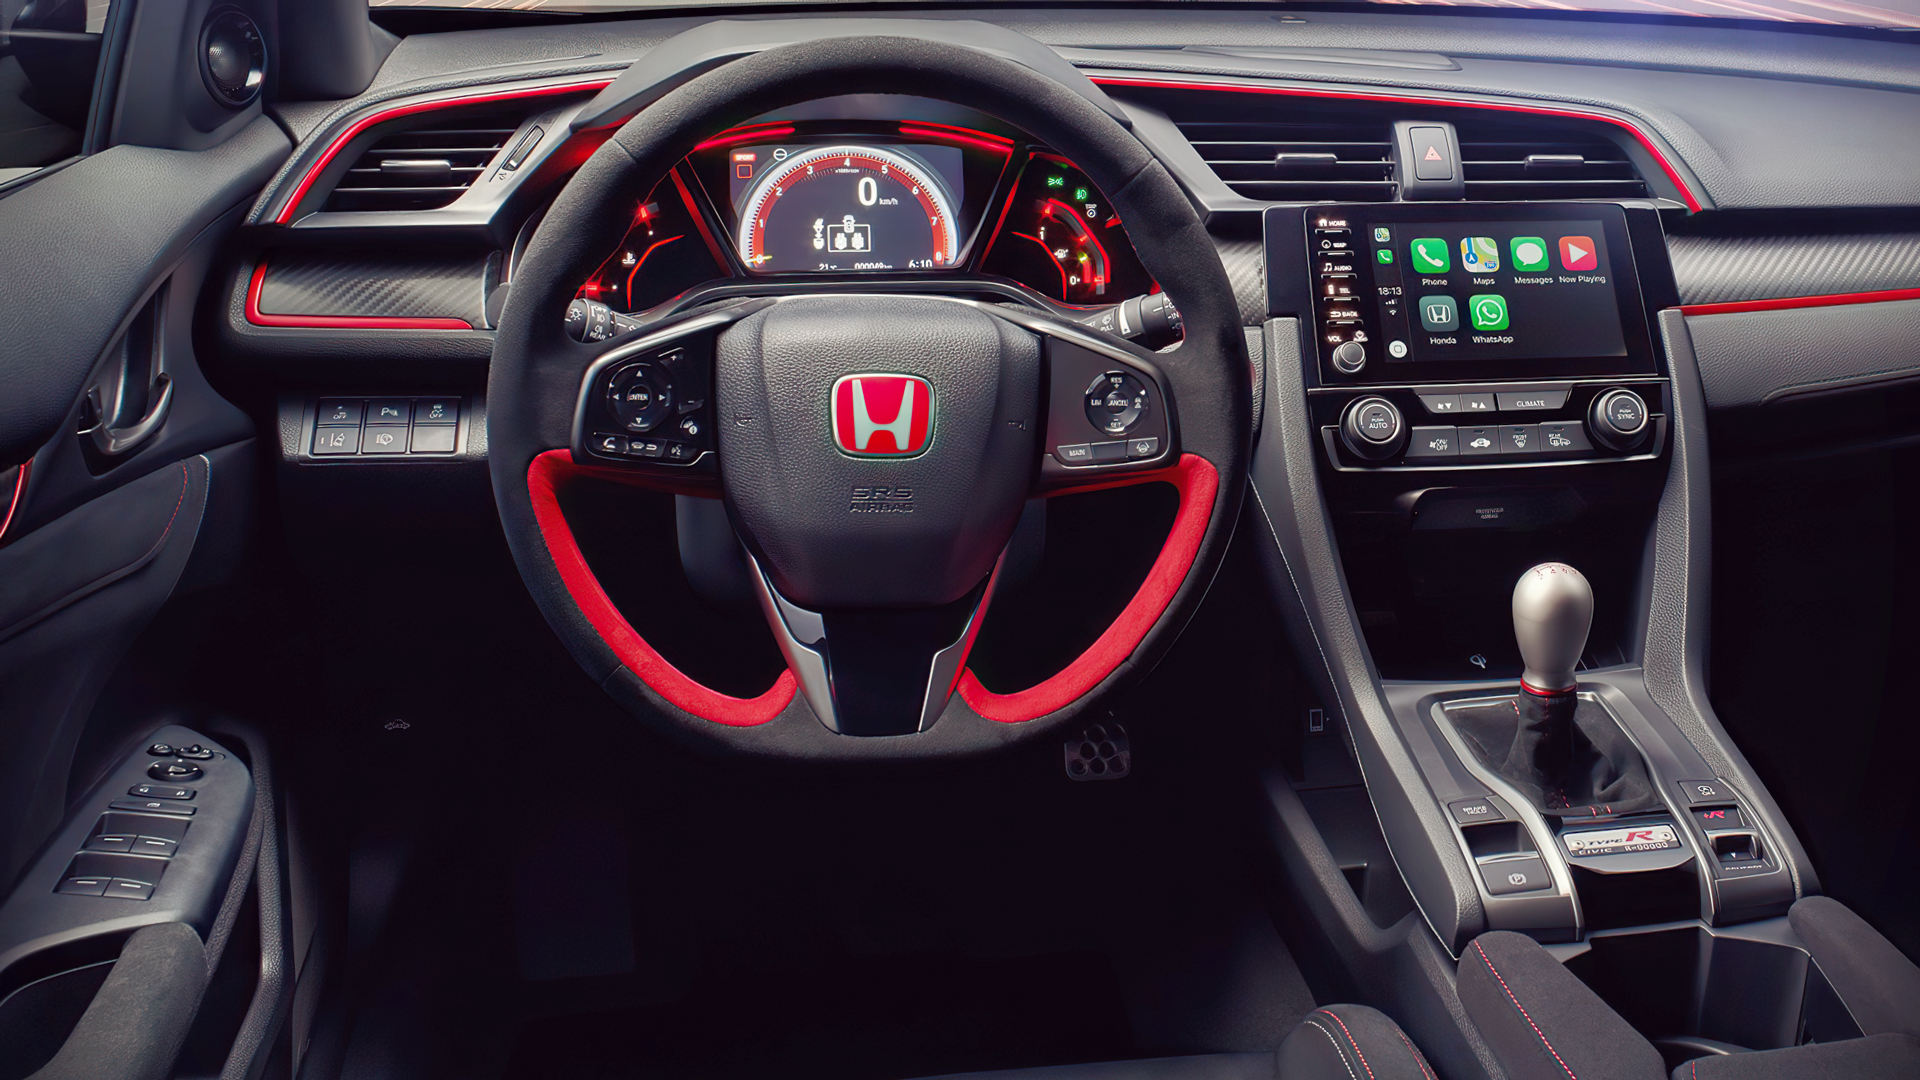 Honda Civic Type R Sport Line 2020 Interior Wallpaper